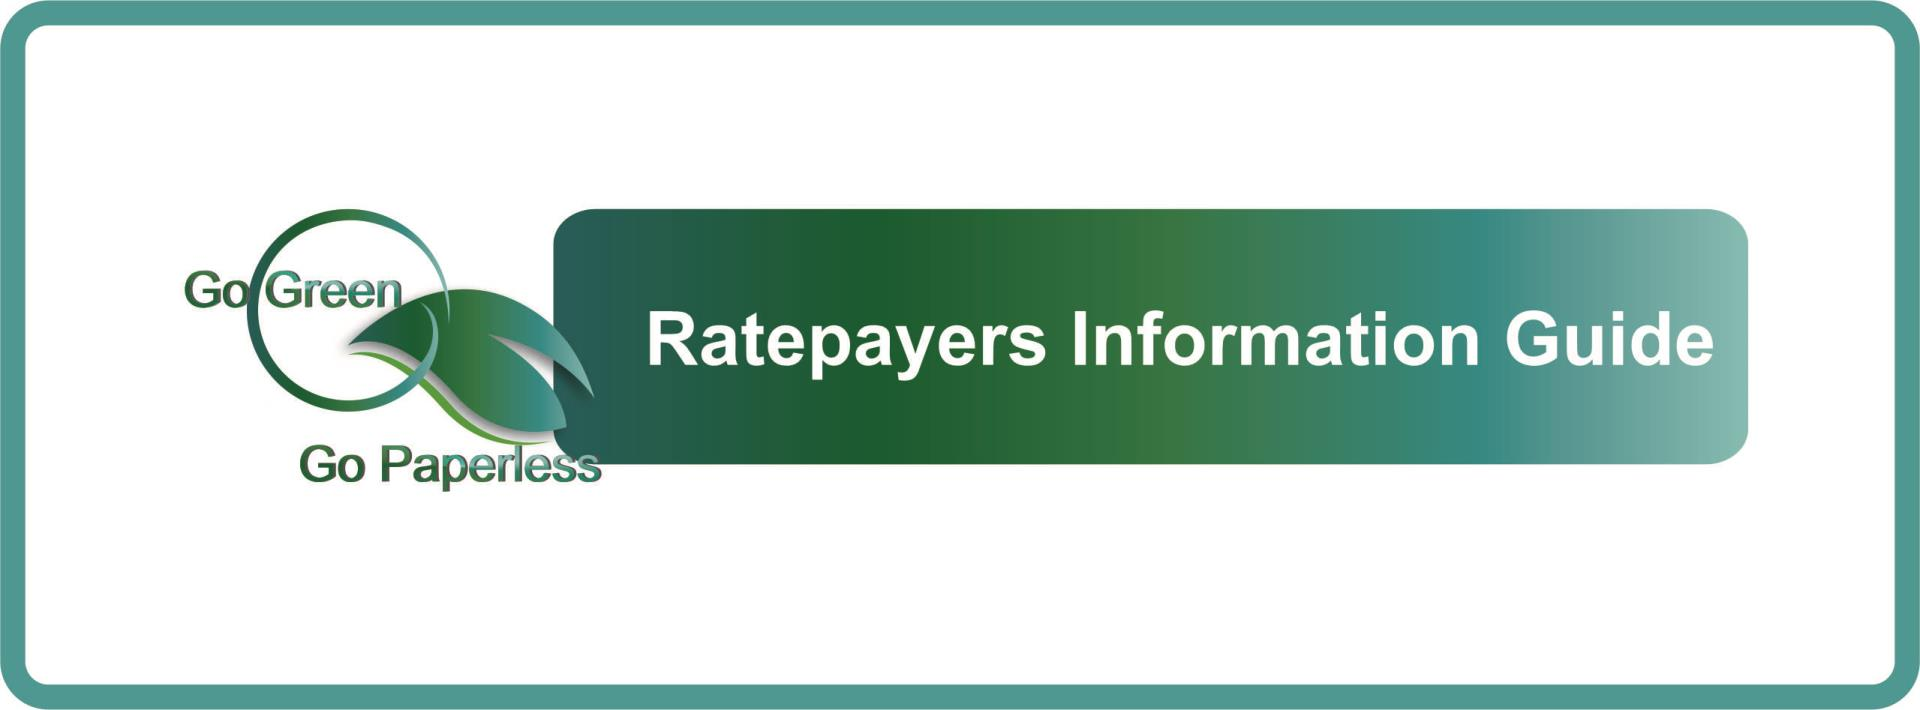 eRates and Ratepayers Information Guide 2020